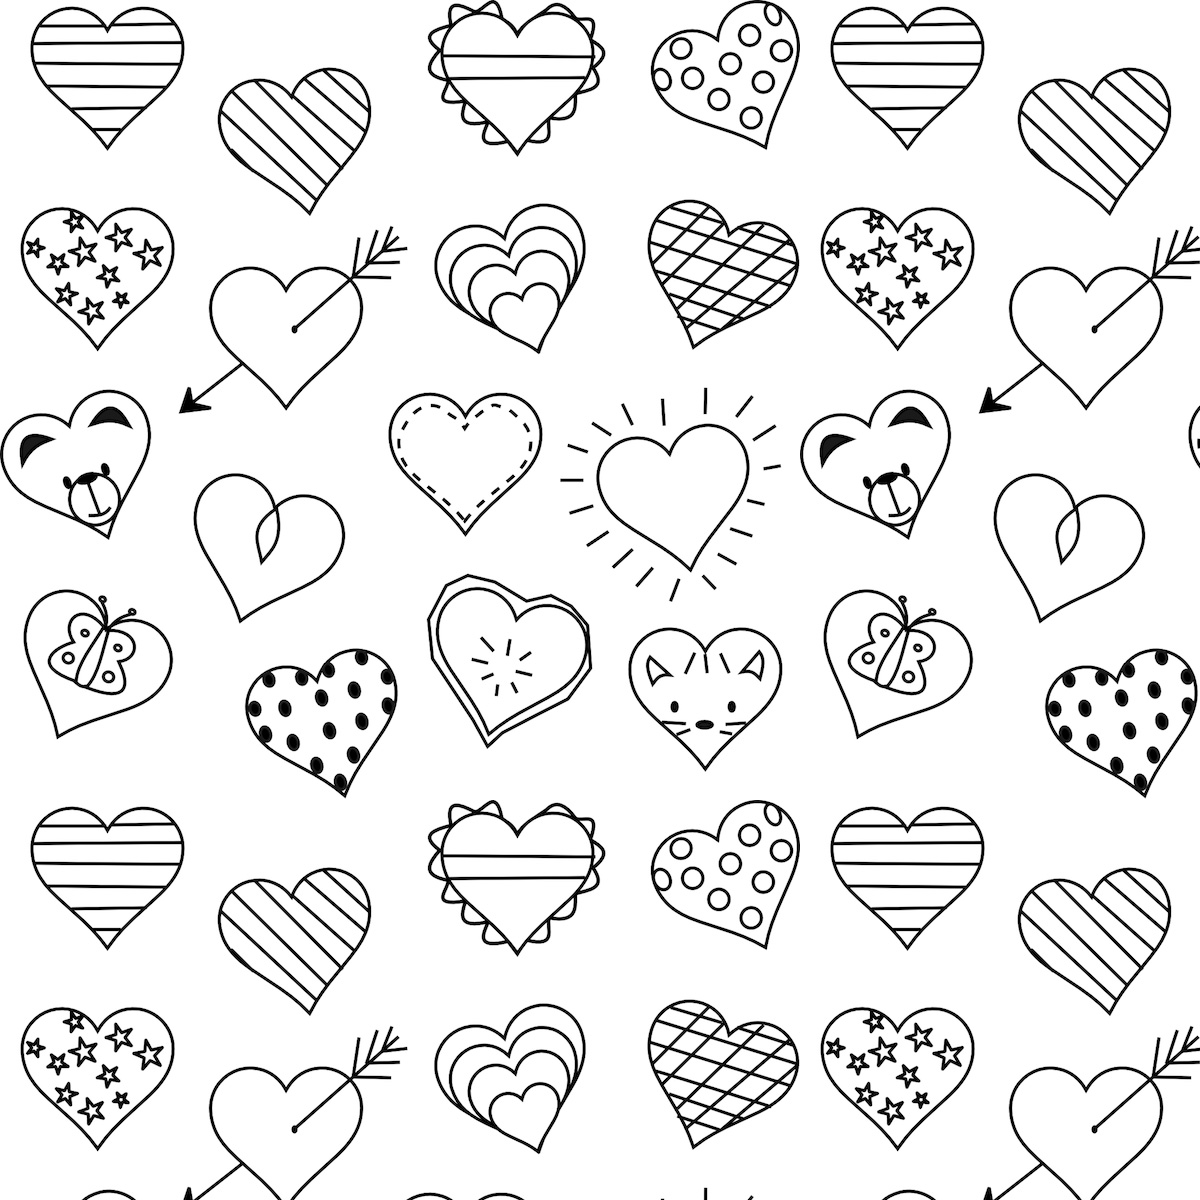 Dynamite image pertaining to heart coloring pages printable